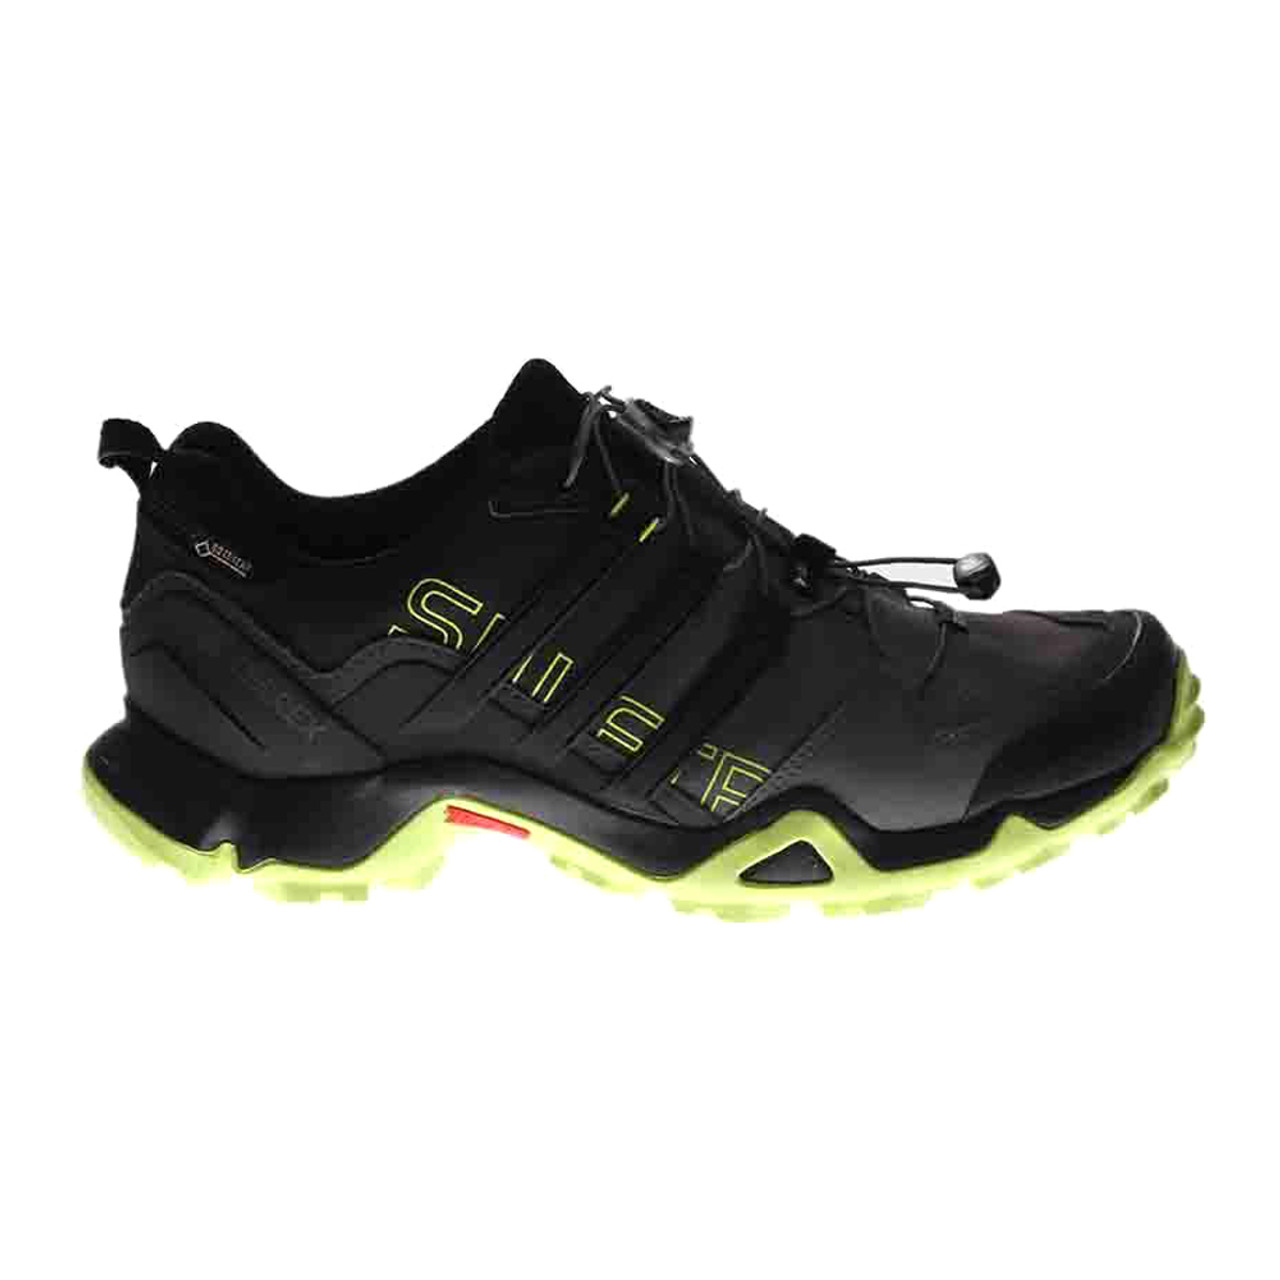 de6a0dcda7738 Adidas Men s Terrex Swift R GTX Hiking Shoe Black Semi Solar Yellow - Shop  now